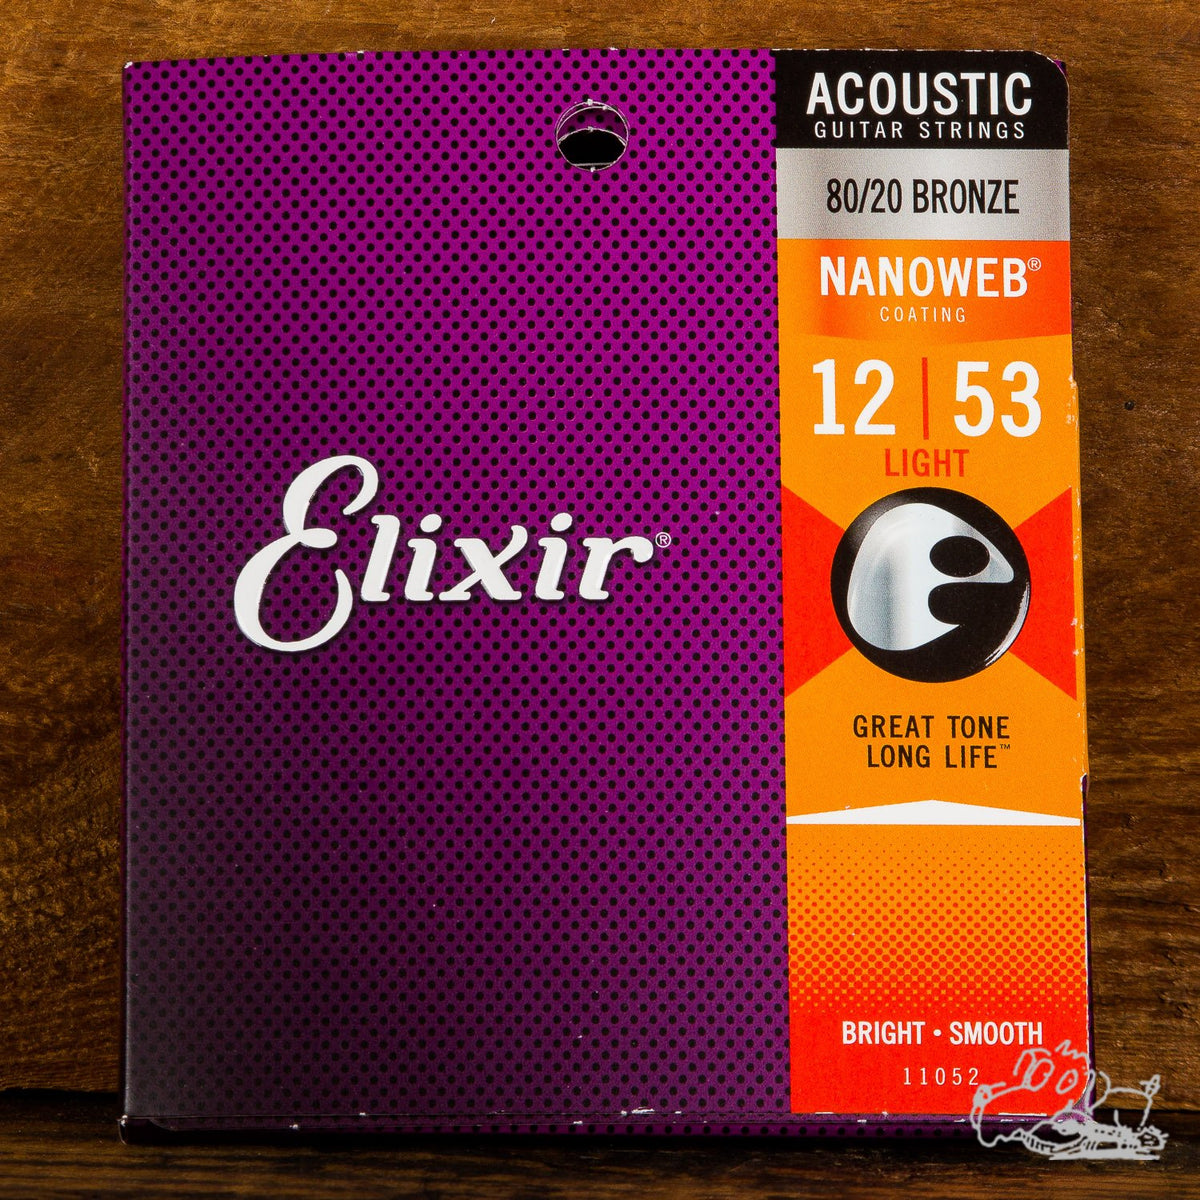 Elixir Nanoweb Coating Acoustic Guitar Strings 80/20 Bronze Light 12-53